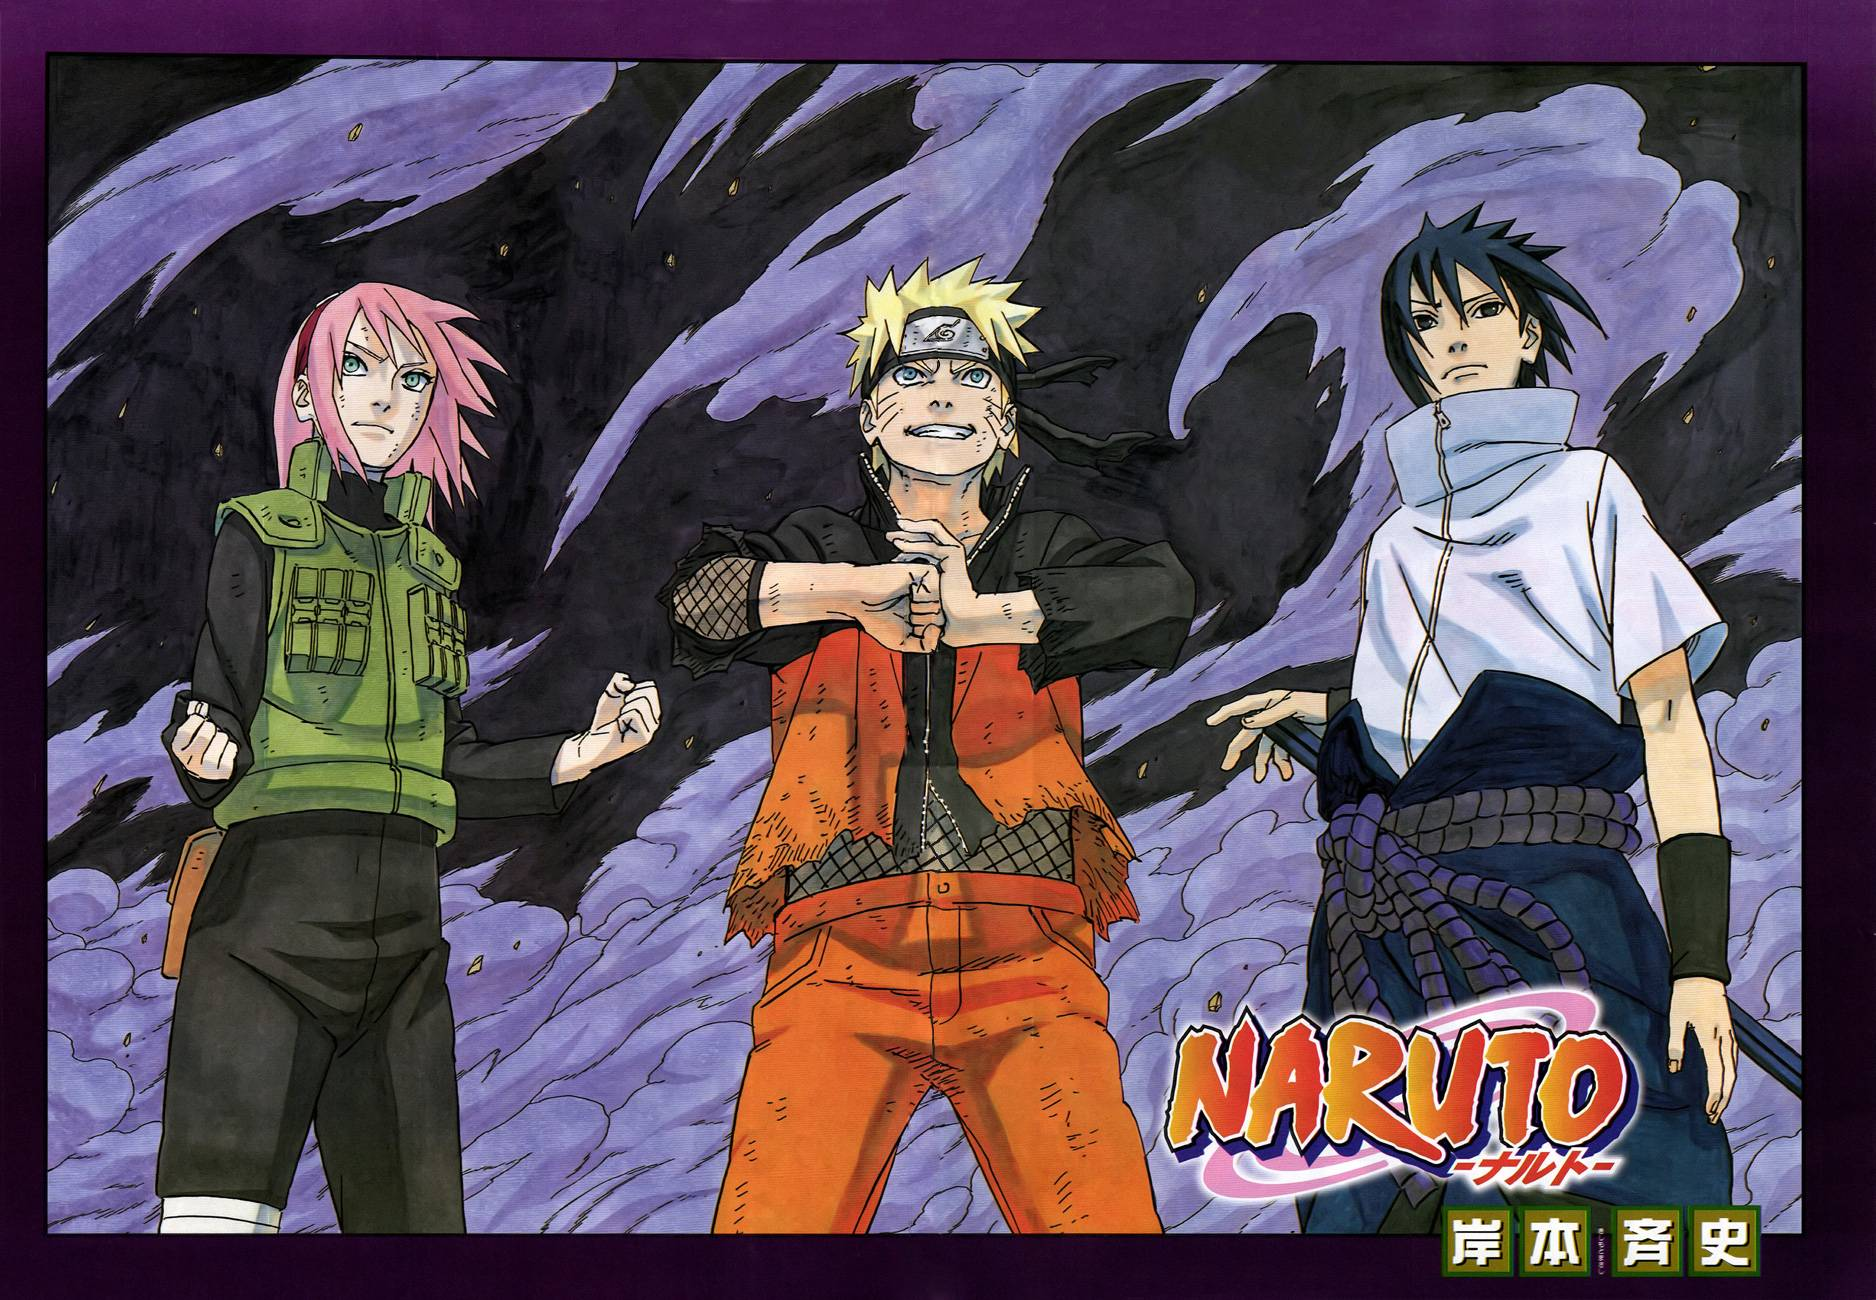 Naruto Shippuden - Team 7 Reunites Again! - Naruto Wallpaper